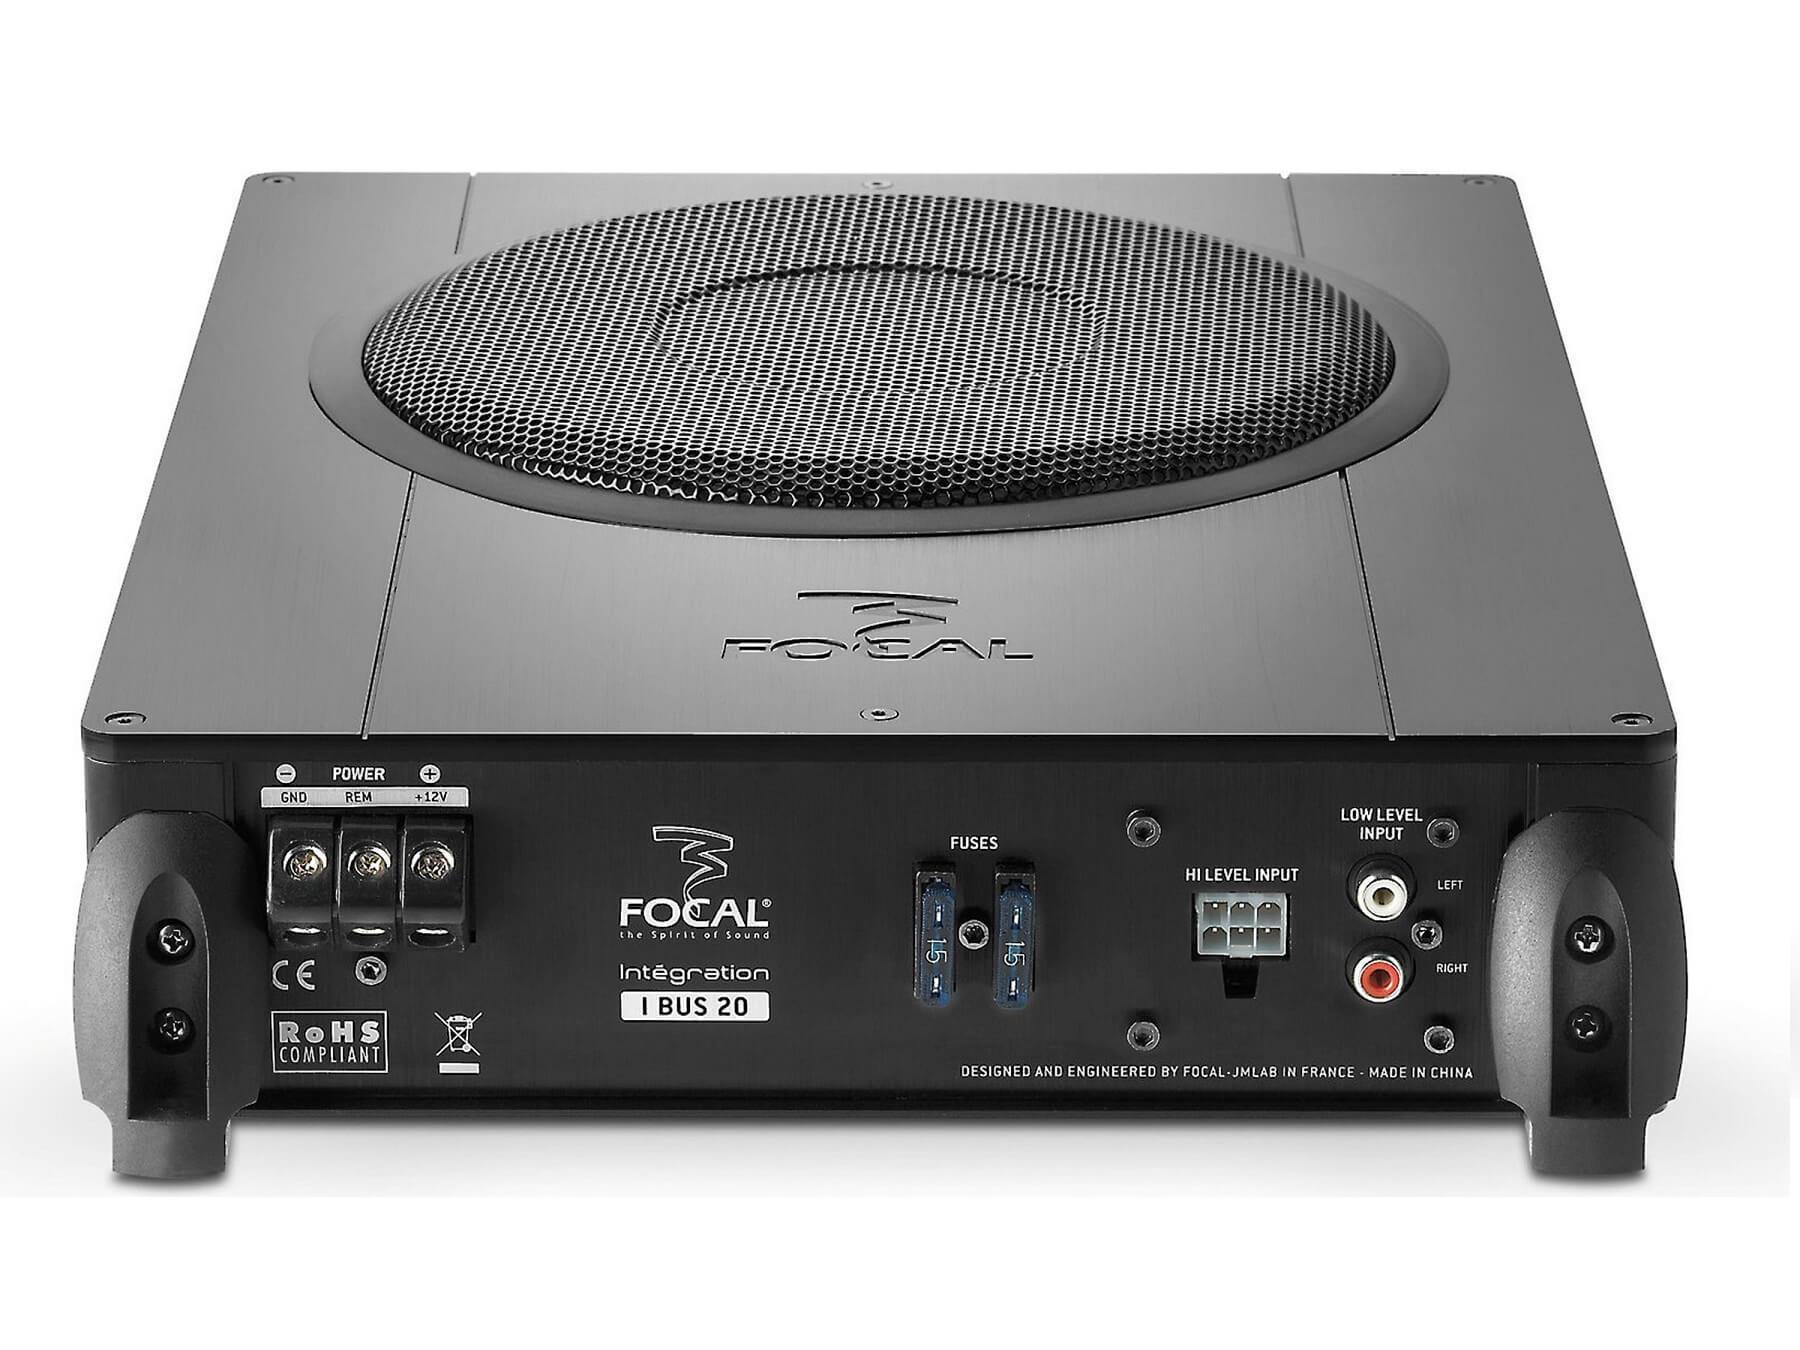 Focal Integration IBUS20 - Back